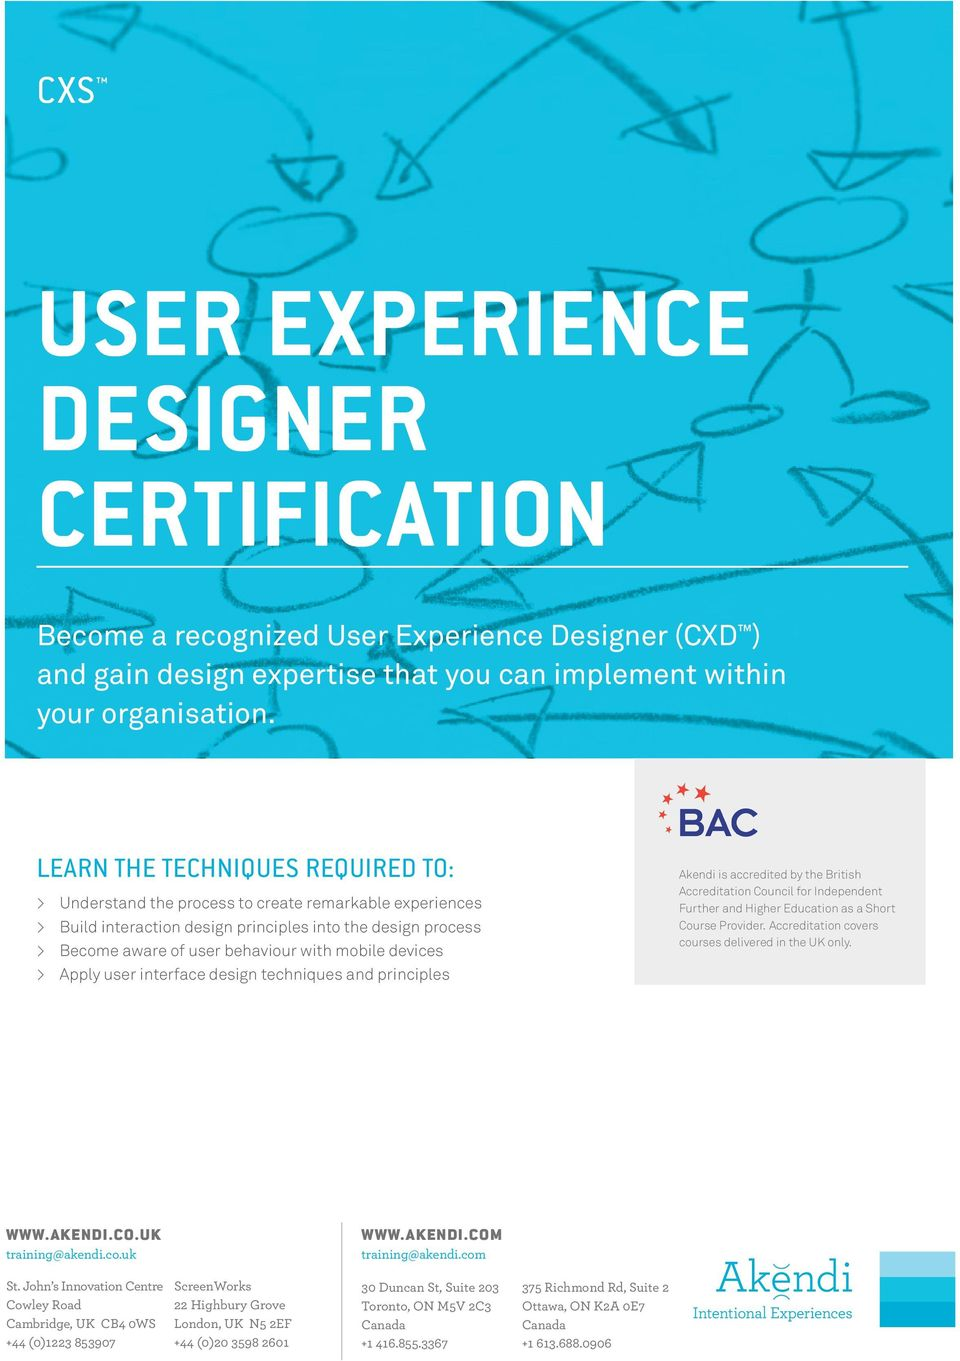 devices > Apply user interface design techniques and principles Akendi is accredited by the British Accreditation Council for Independent Further and Higher Education as a Short Course Provider.